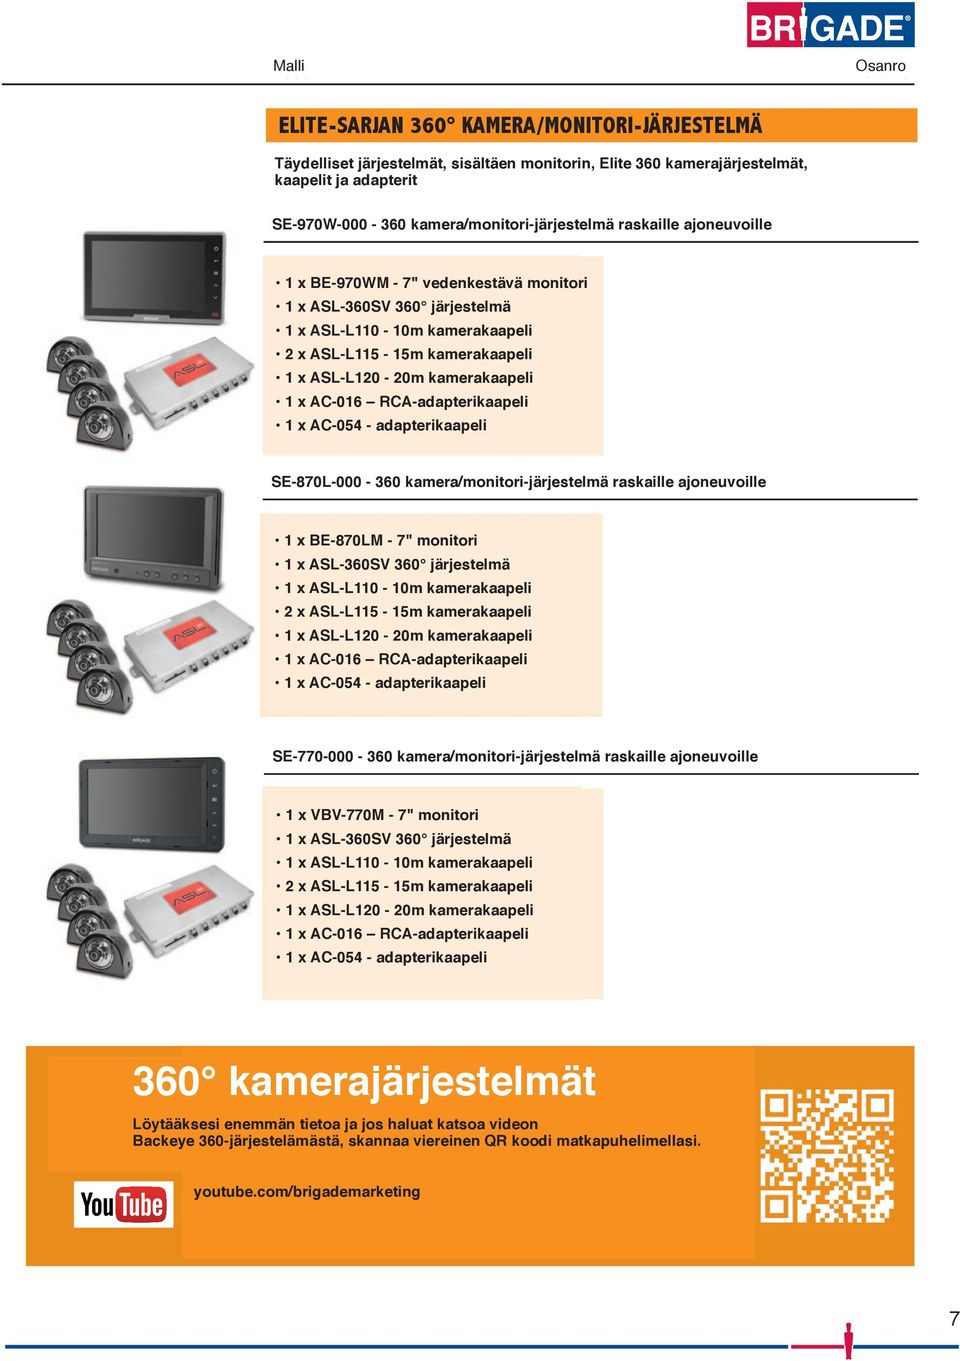 "rigid vehicles 4341 1xBE-970WM - 7"" waterproof monitor 1 x BE-970WM - 7"" vedenkestävä monitori 1 x ASL-360SV 360 system 1 x ASL-360SV 360 järjestelmä 11 x x ASL-L110-10m - 10m camera kamerakaapeli"